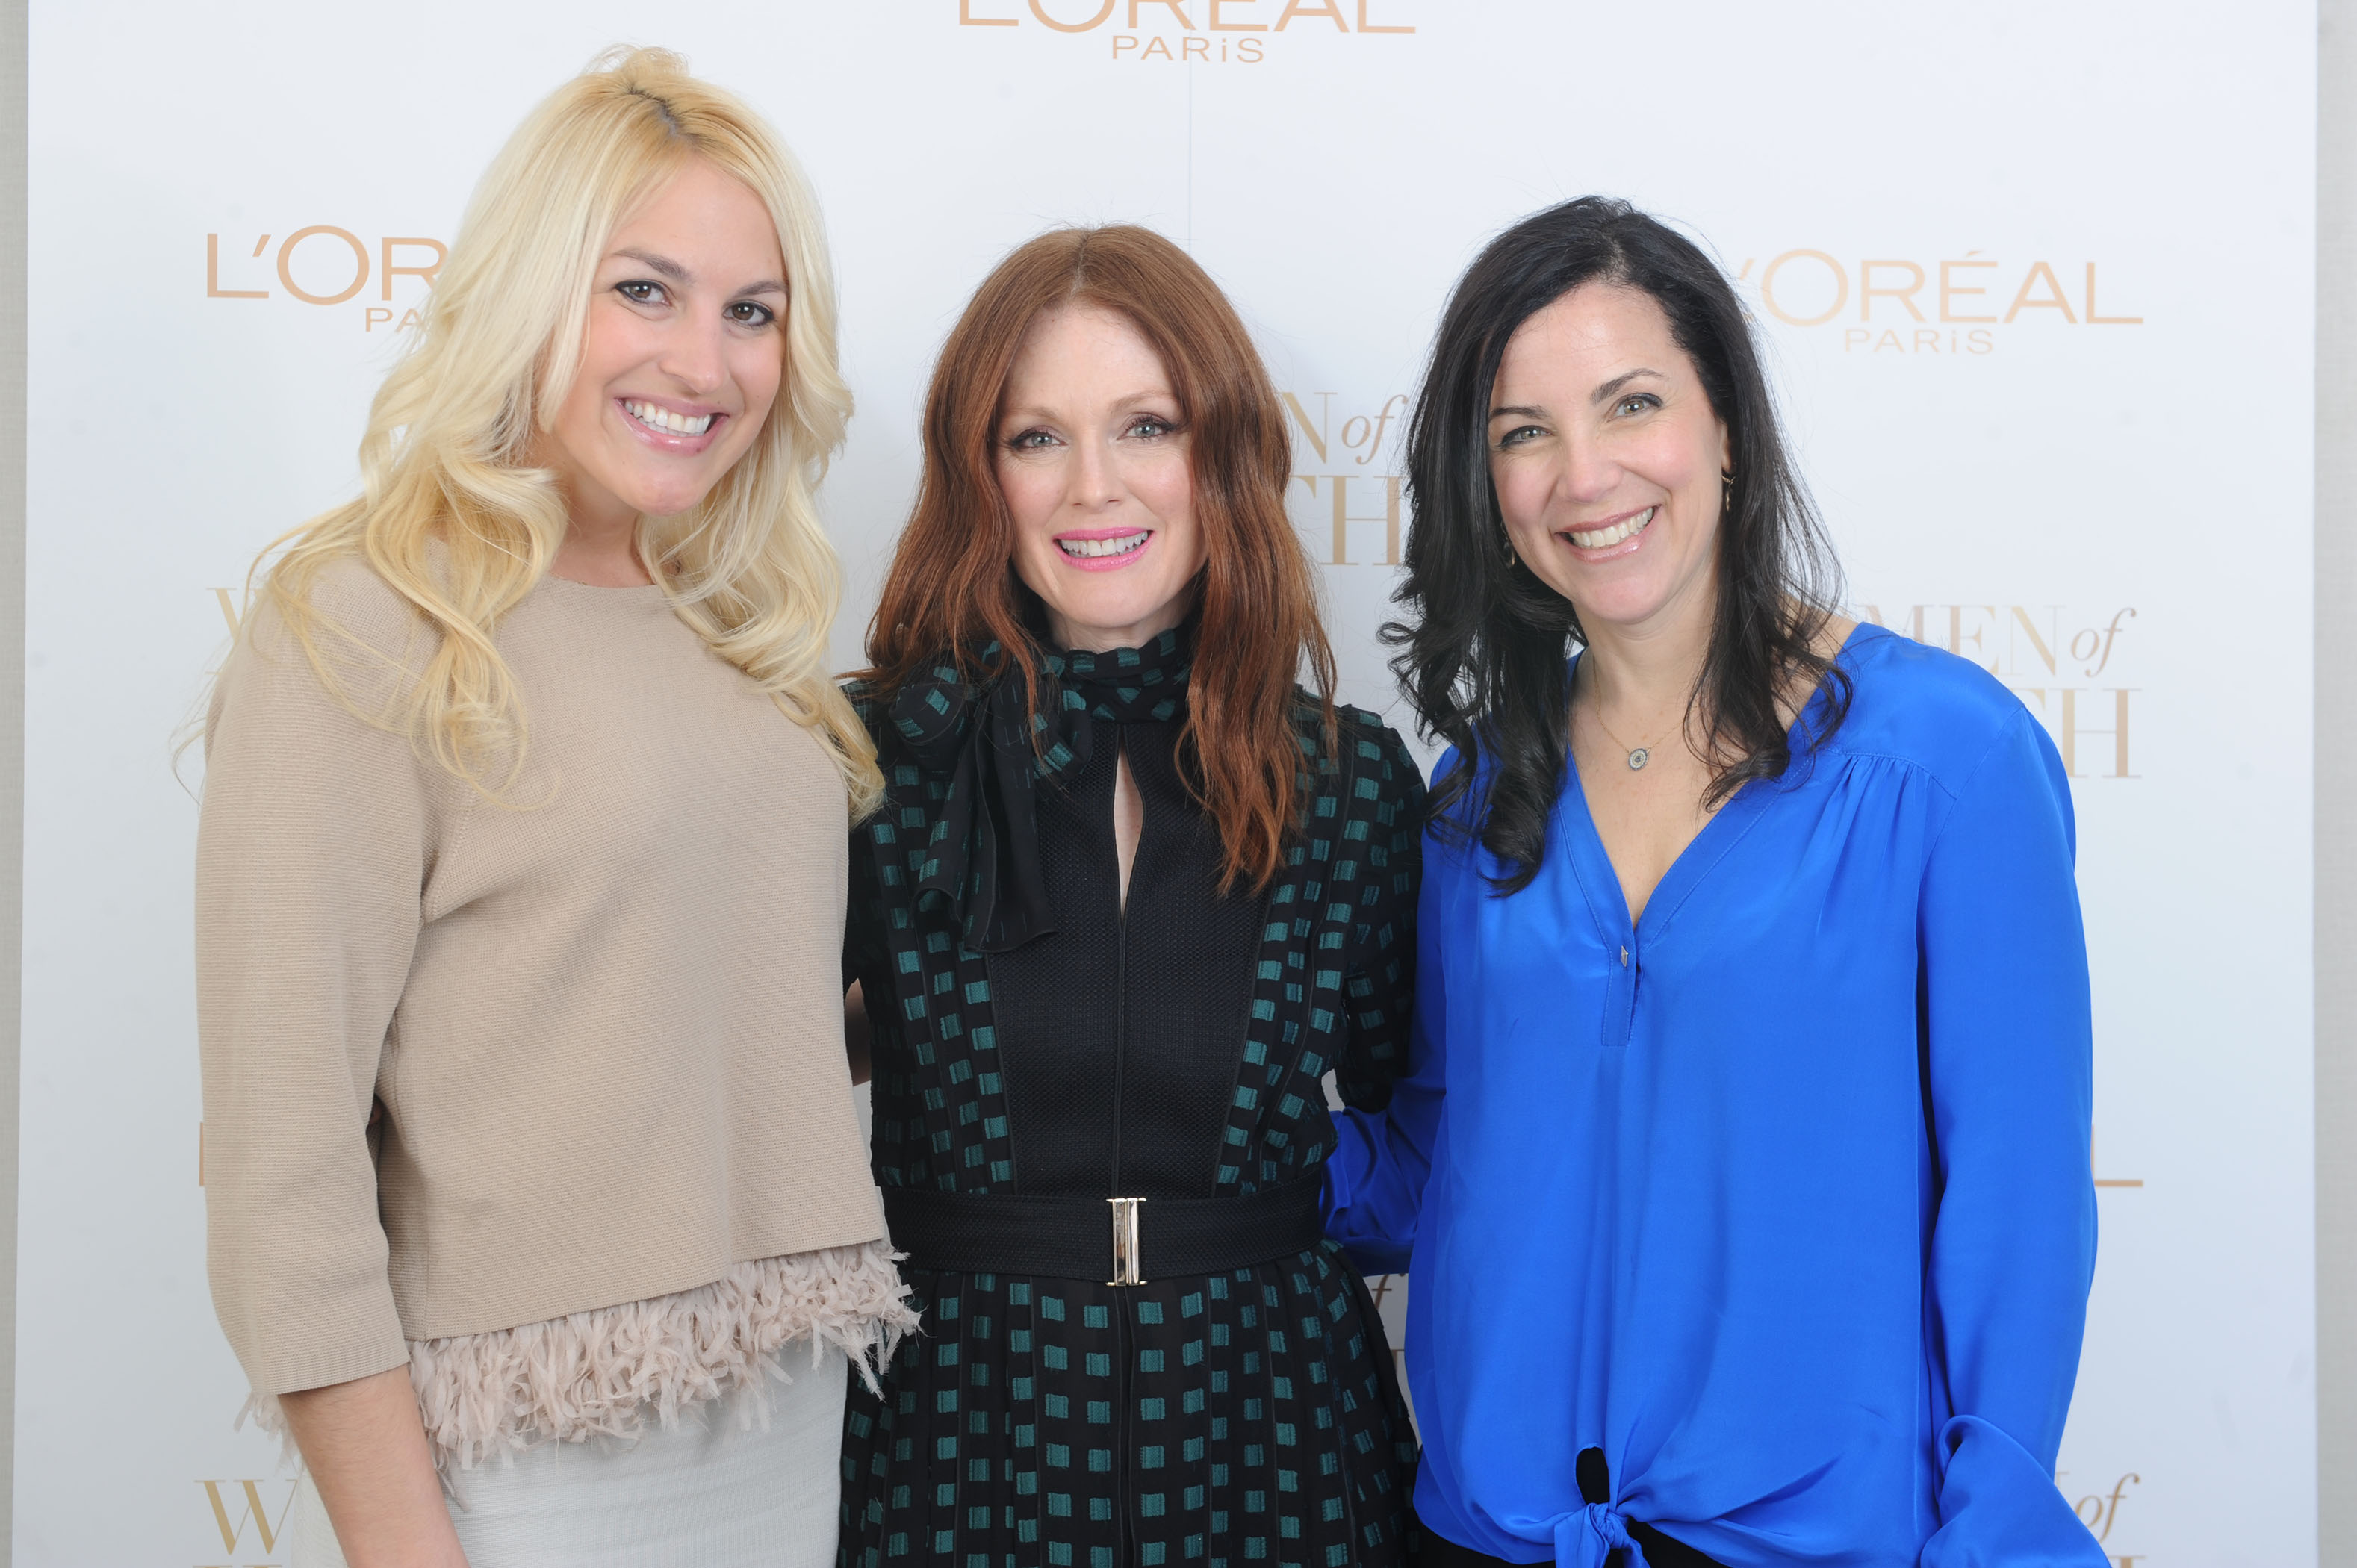 Julianne Moore for Loreal